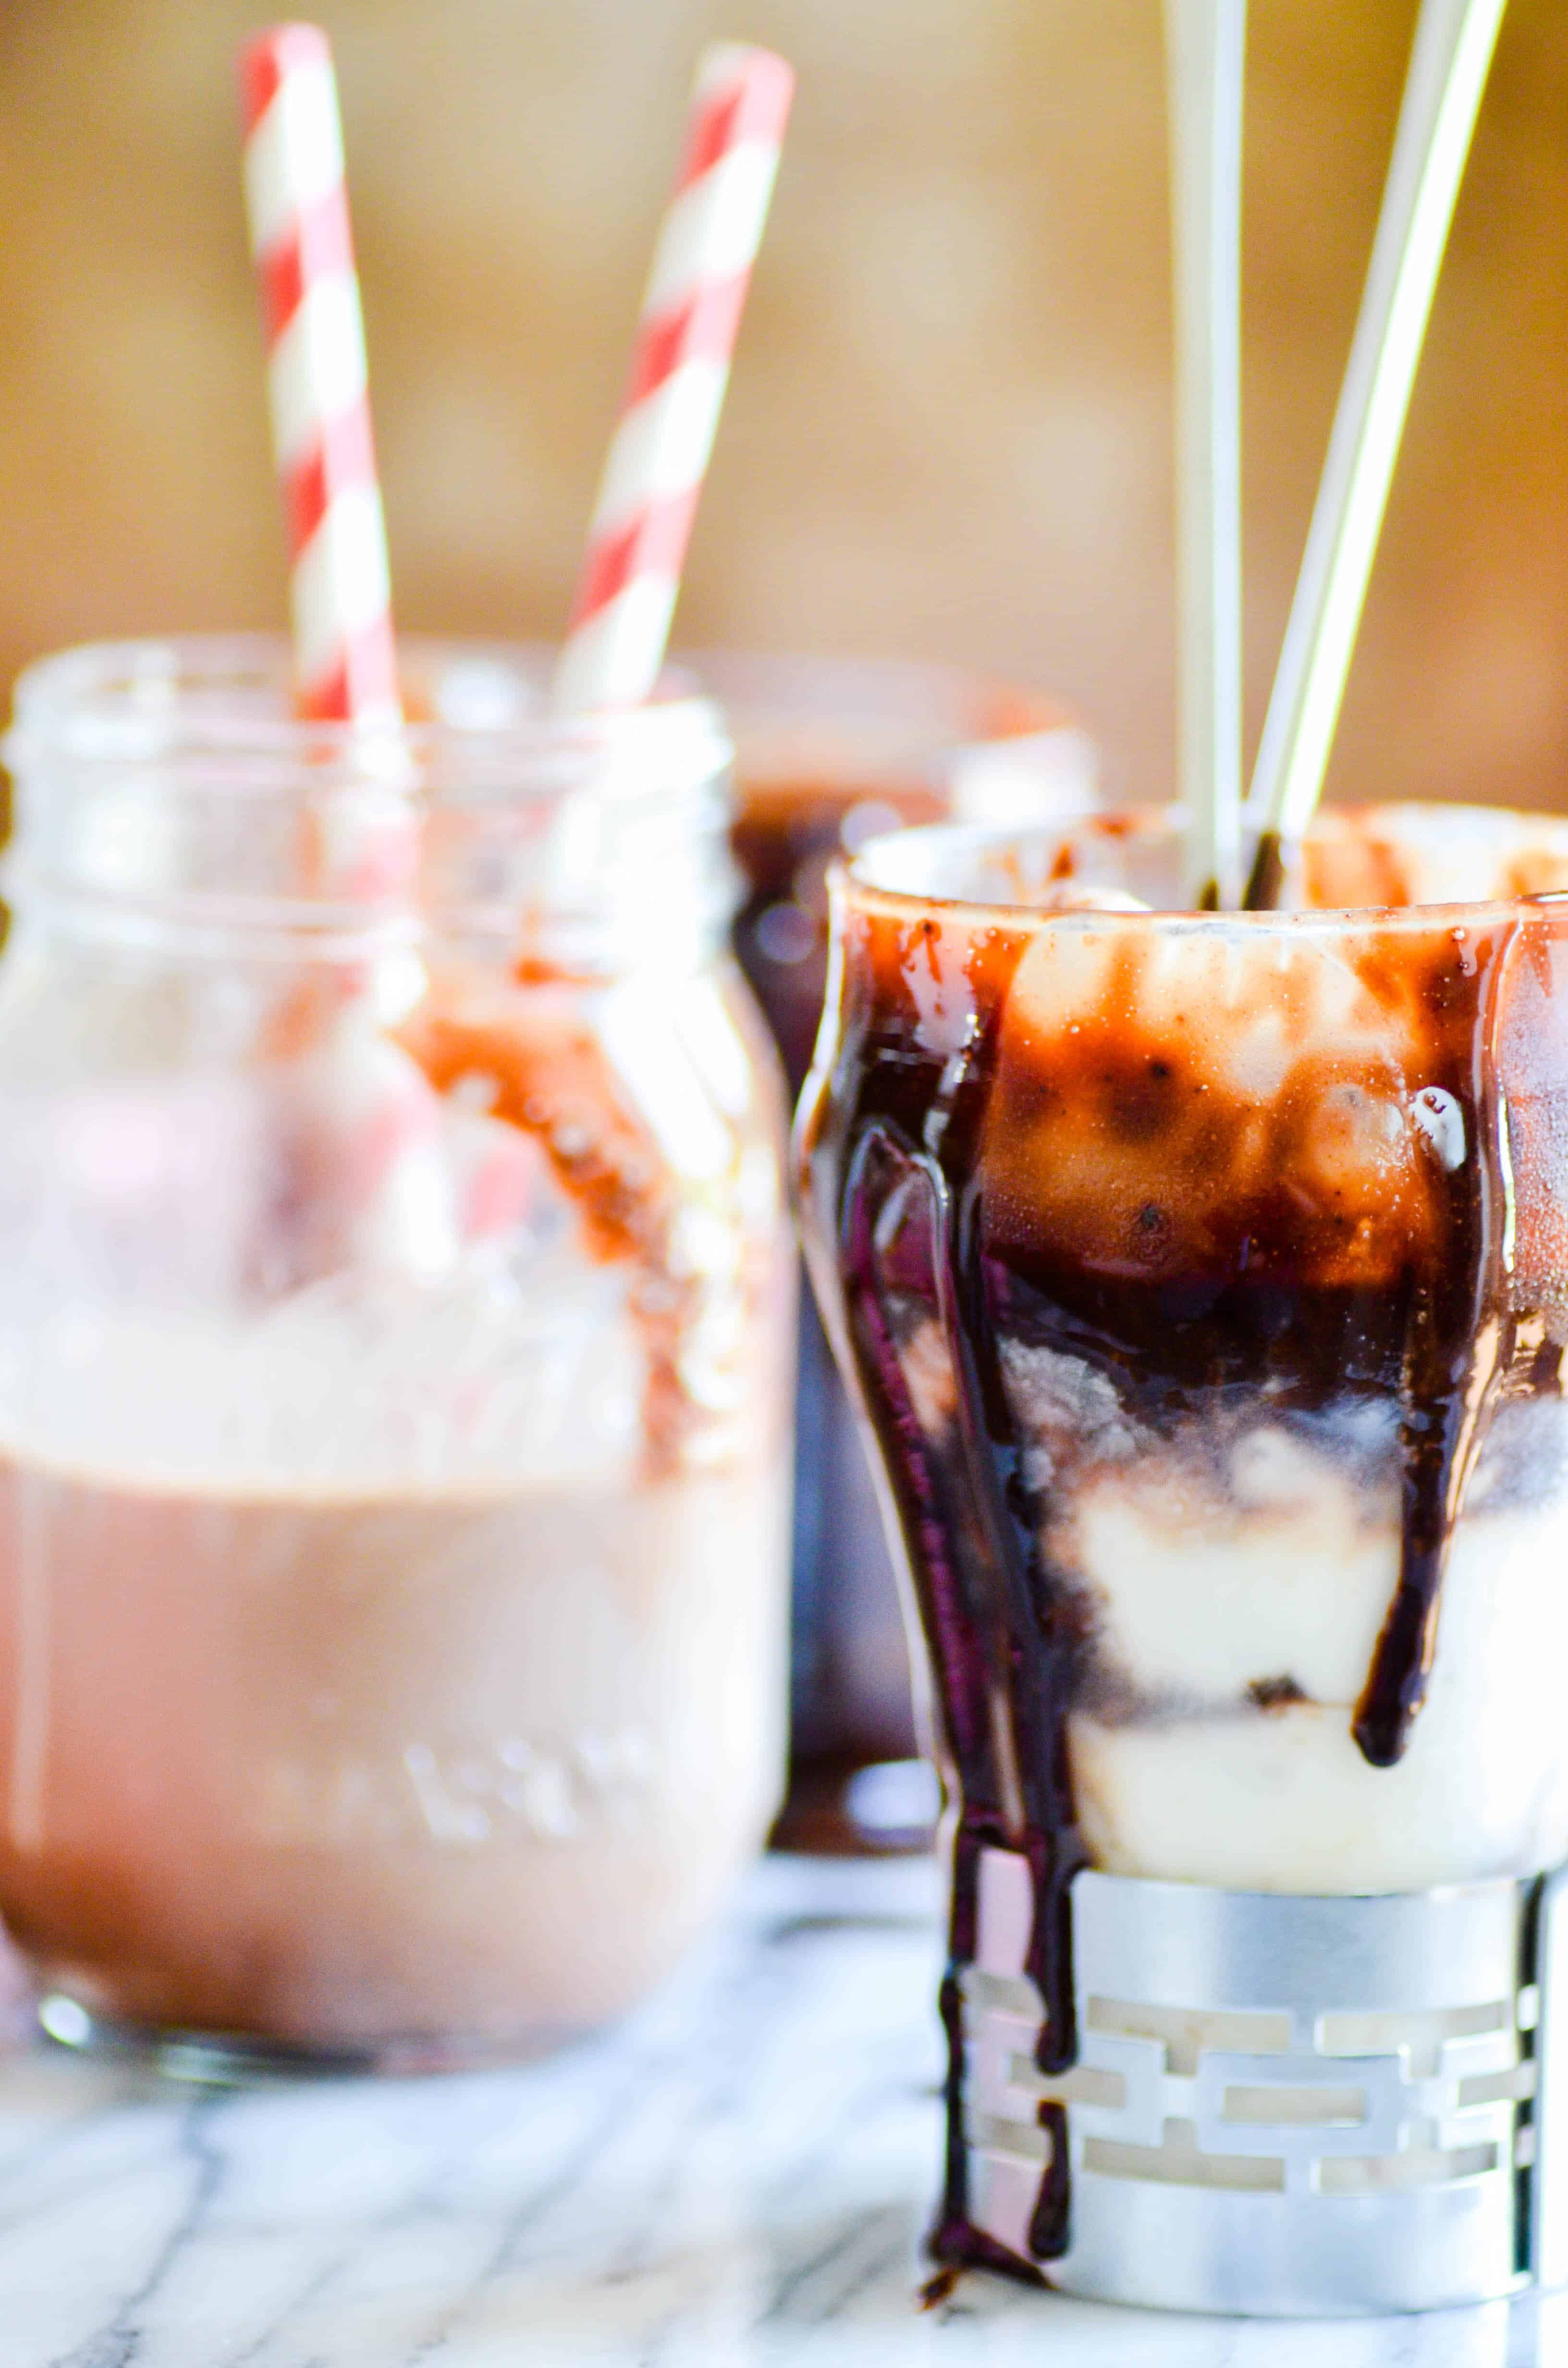 This homemade chocolate syrup comes together in just a few minutes with ingredients you already have on hand.